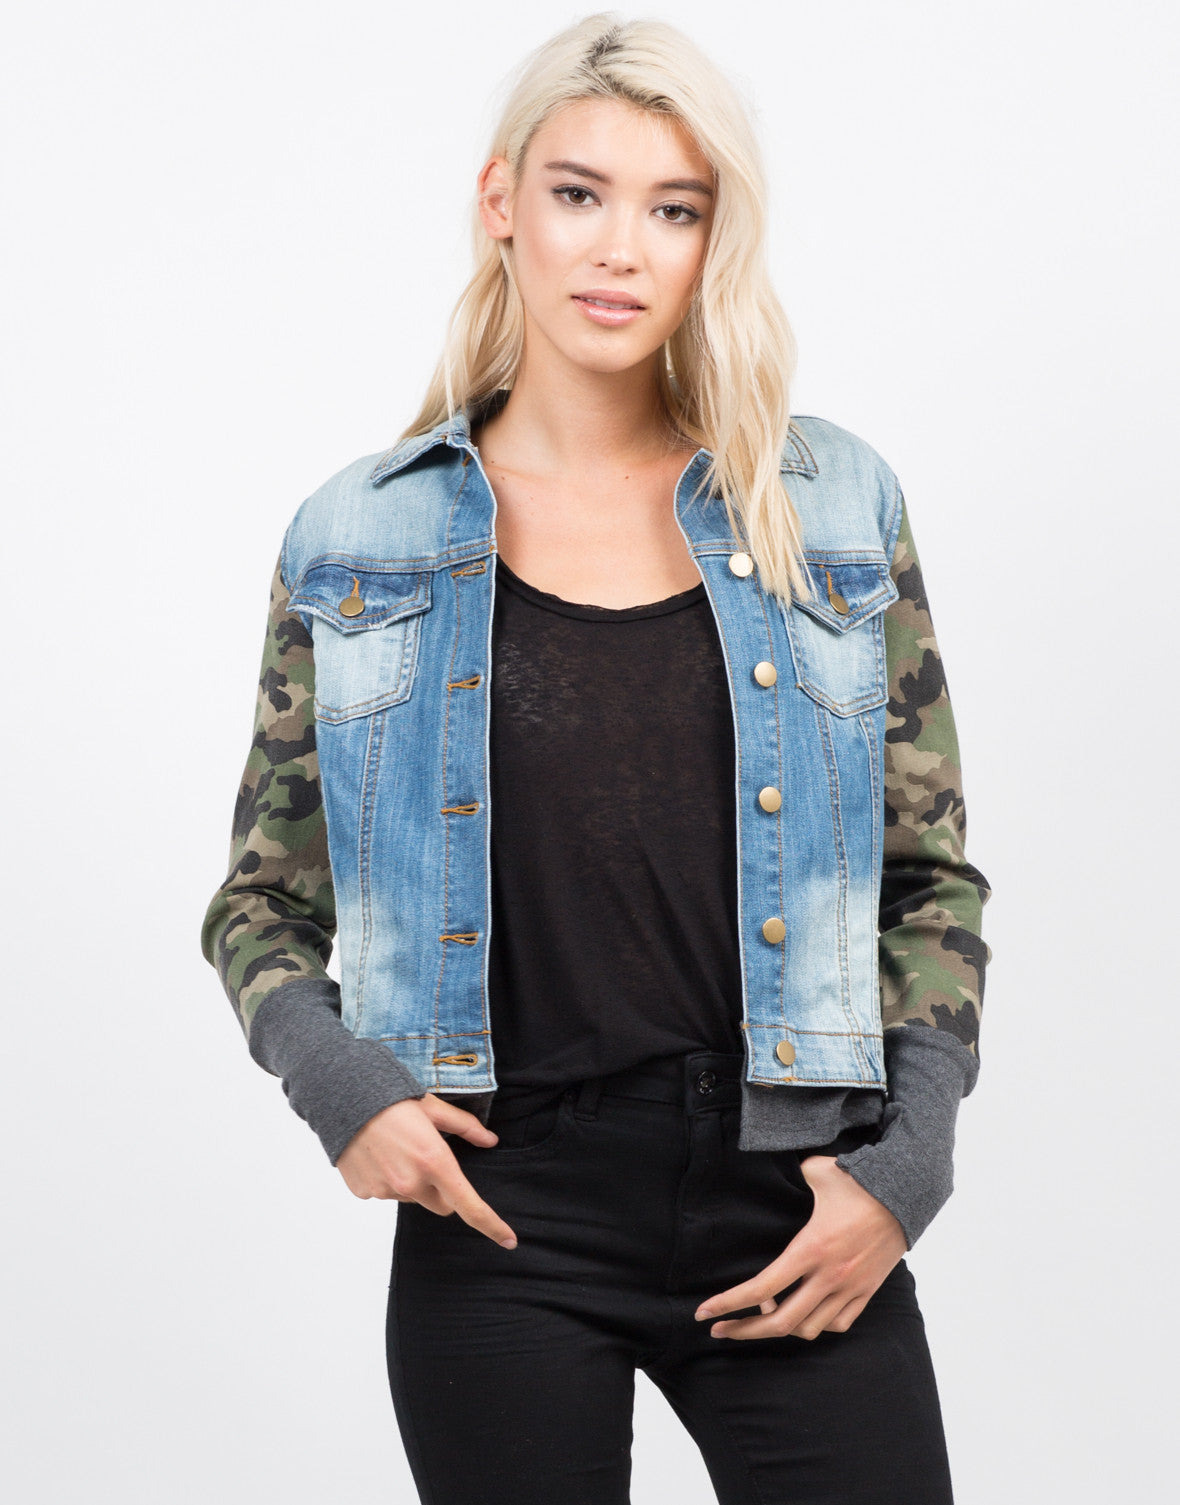 Front View of Camo Sleeved Denim Jacket